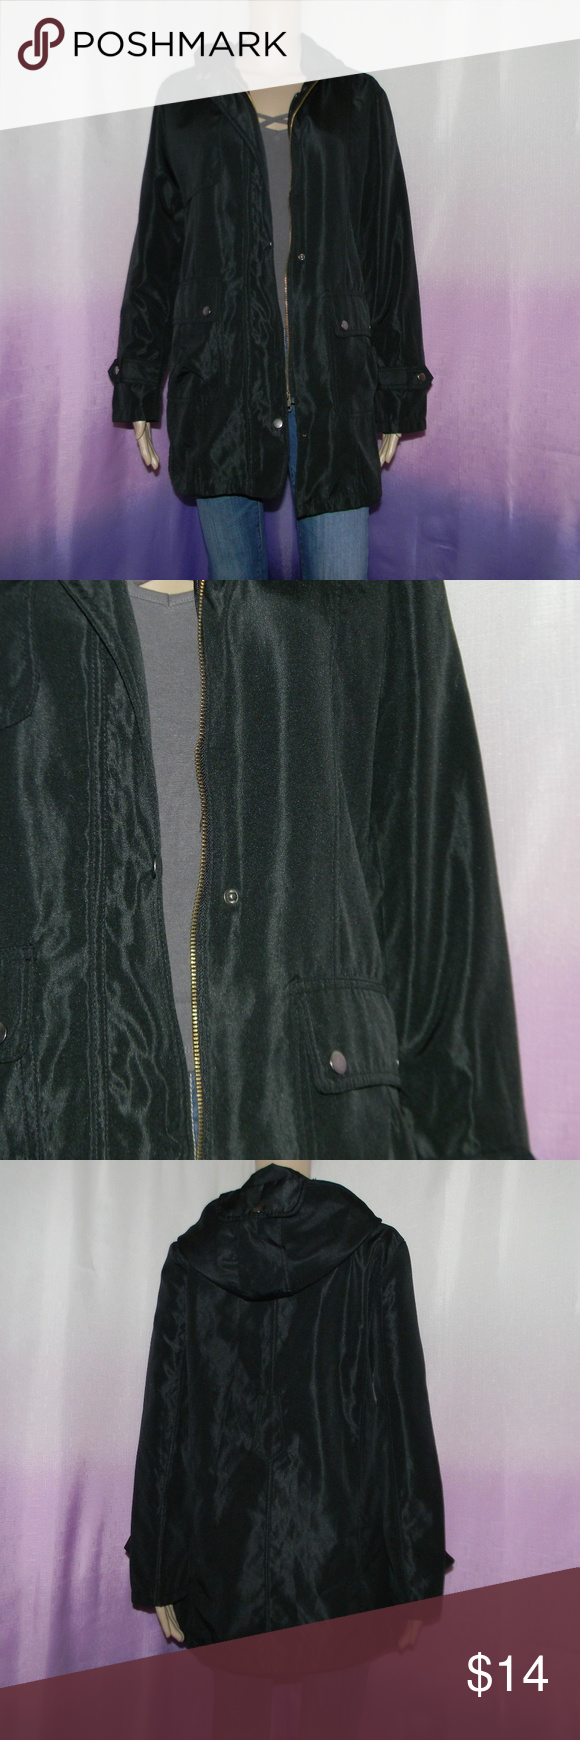 "Vintage Black Jacket Size large, very good condition, no material tag, 20.5"" bust, 30.5"" long, 24"" sleeve, worn 10-12 times -Sorry NO TRADES and NO HOLDS -Ships from California -Comes from smoke free, dog friendly homes -I can't model at this time, the mannequin measurements are 32.5"" bust, 24"" waist, 34"" hips, and is 5'10"" and a size S/M -Items are measured by hand and done laying flat Jackets & Coats"